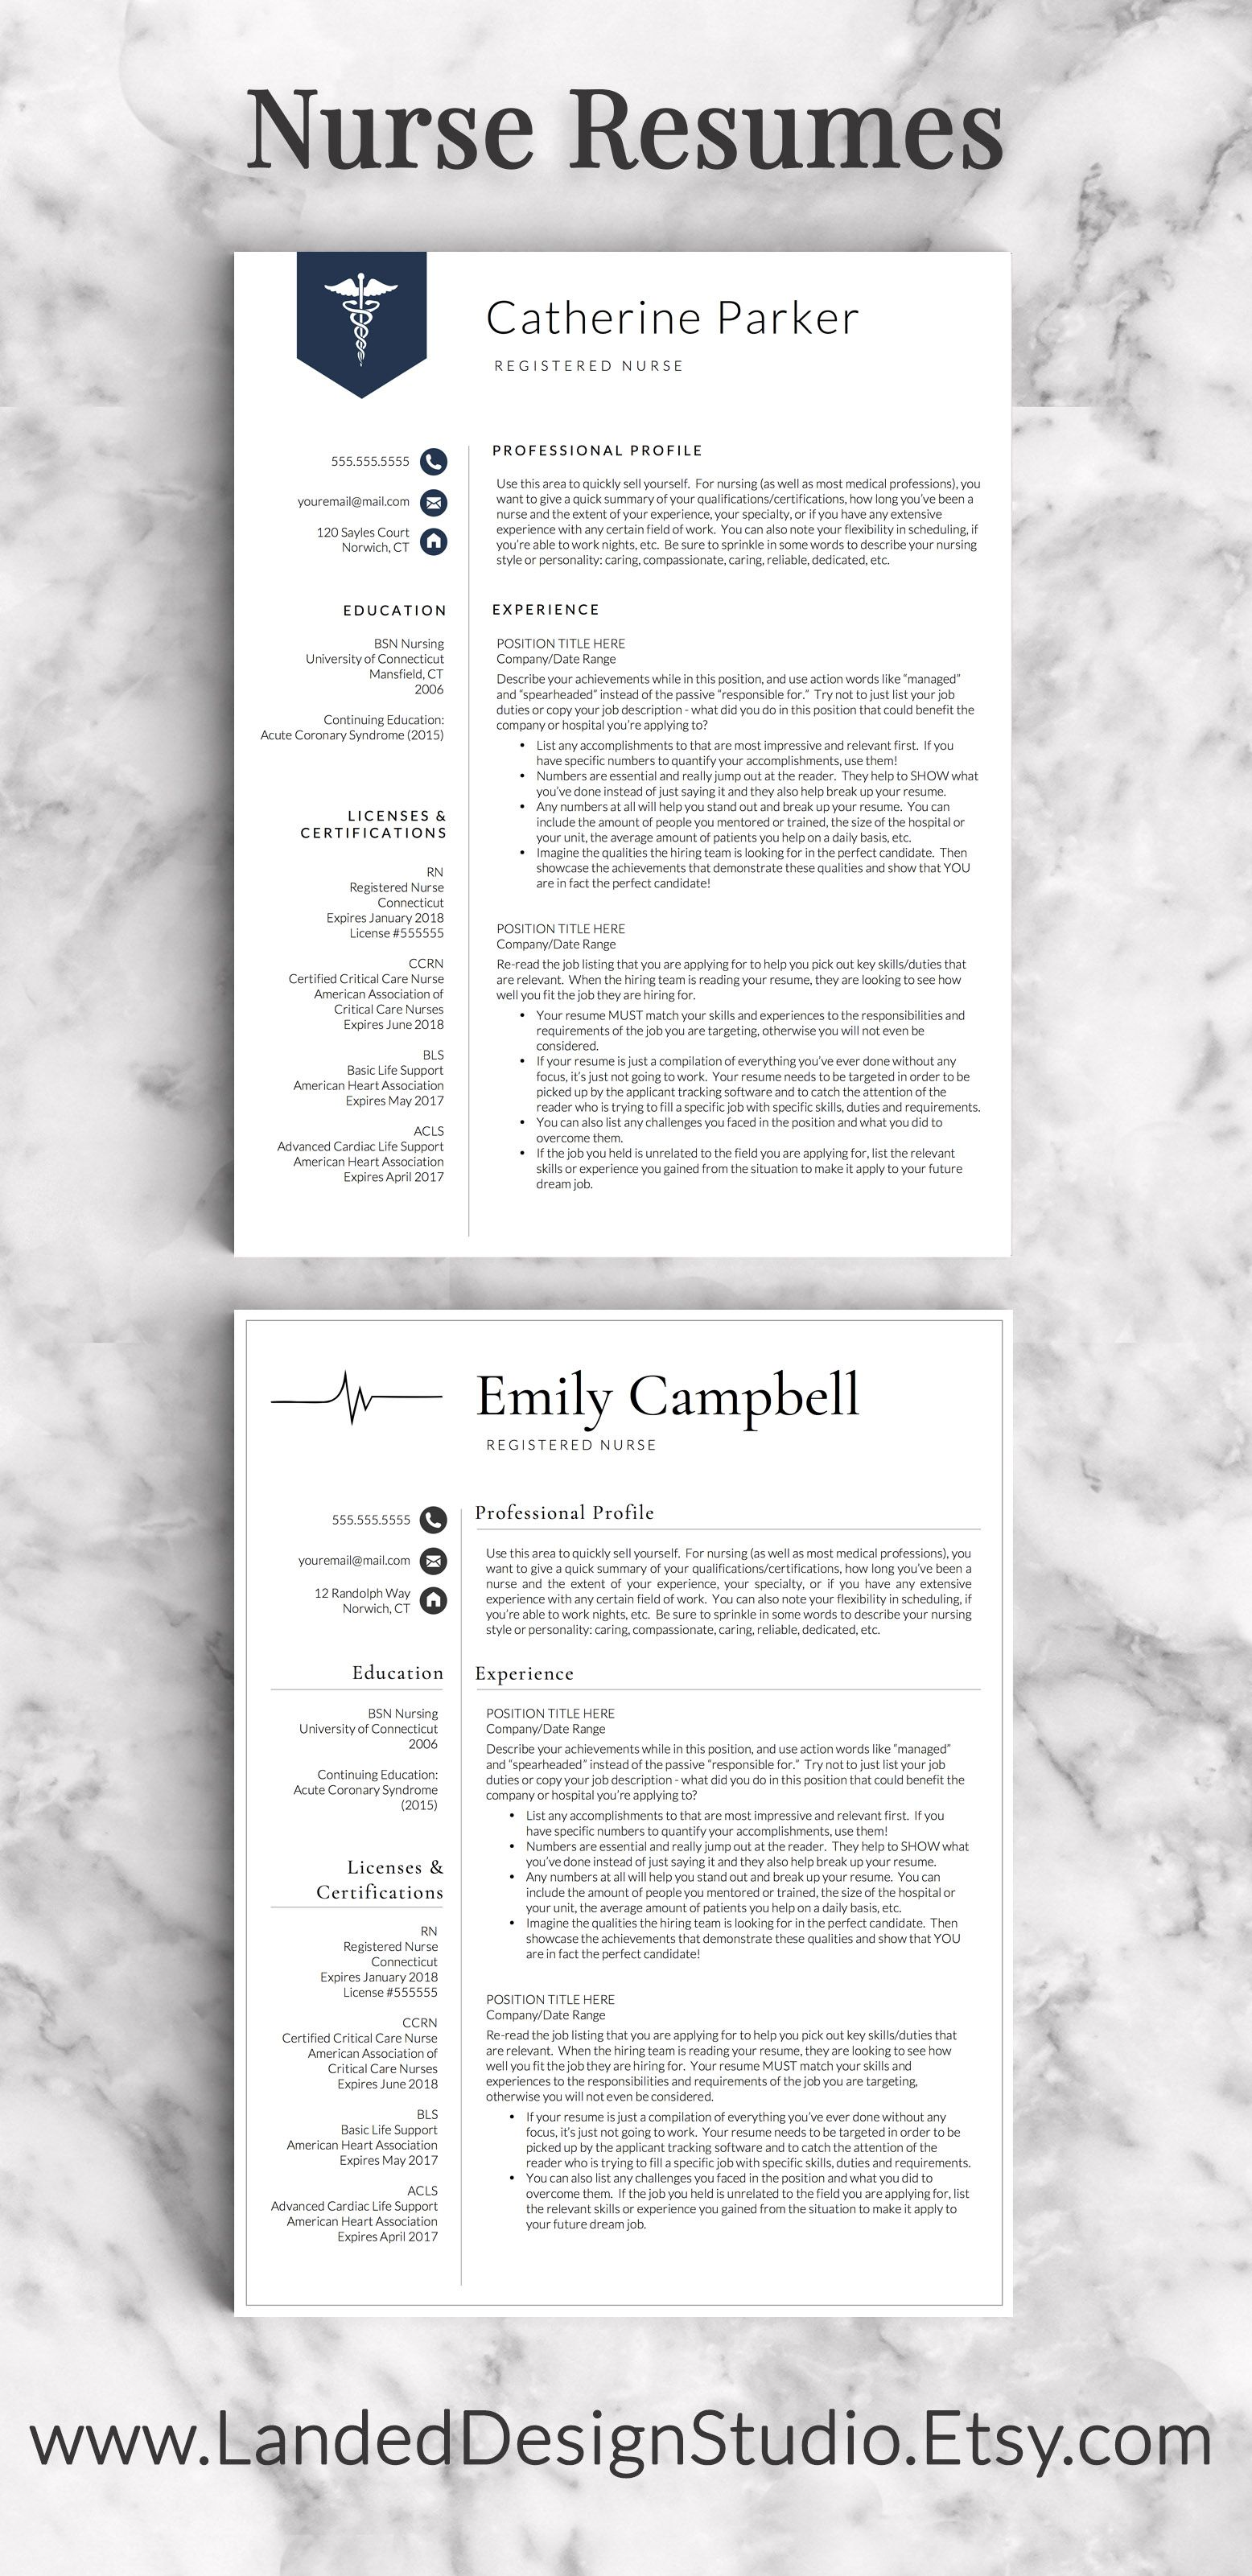 Nurse Resume Skills Nurse Resume Templates Makes Me Want To Hurry Up And